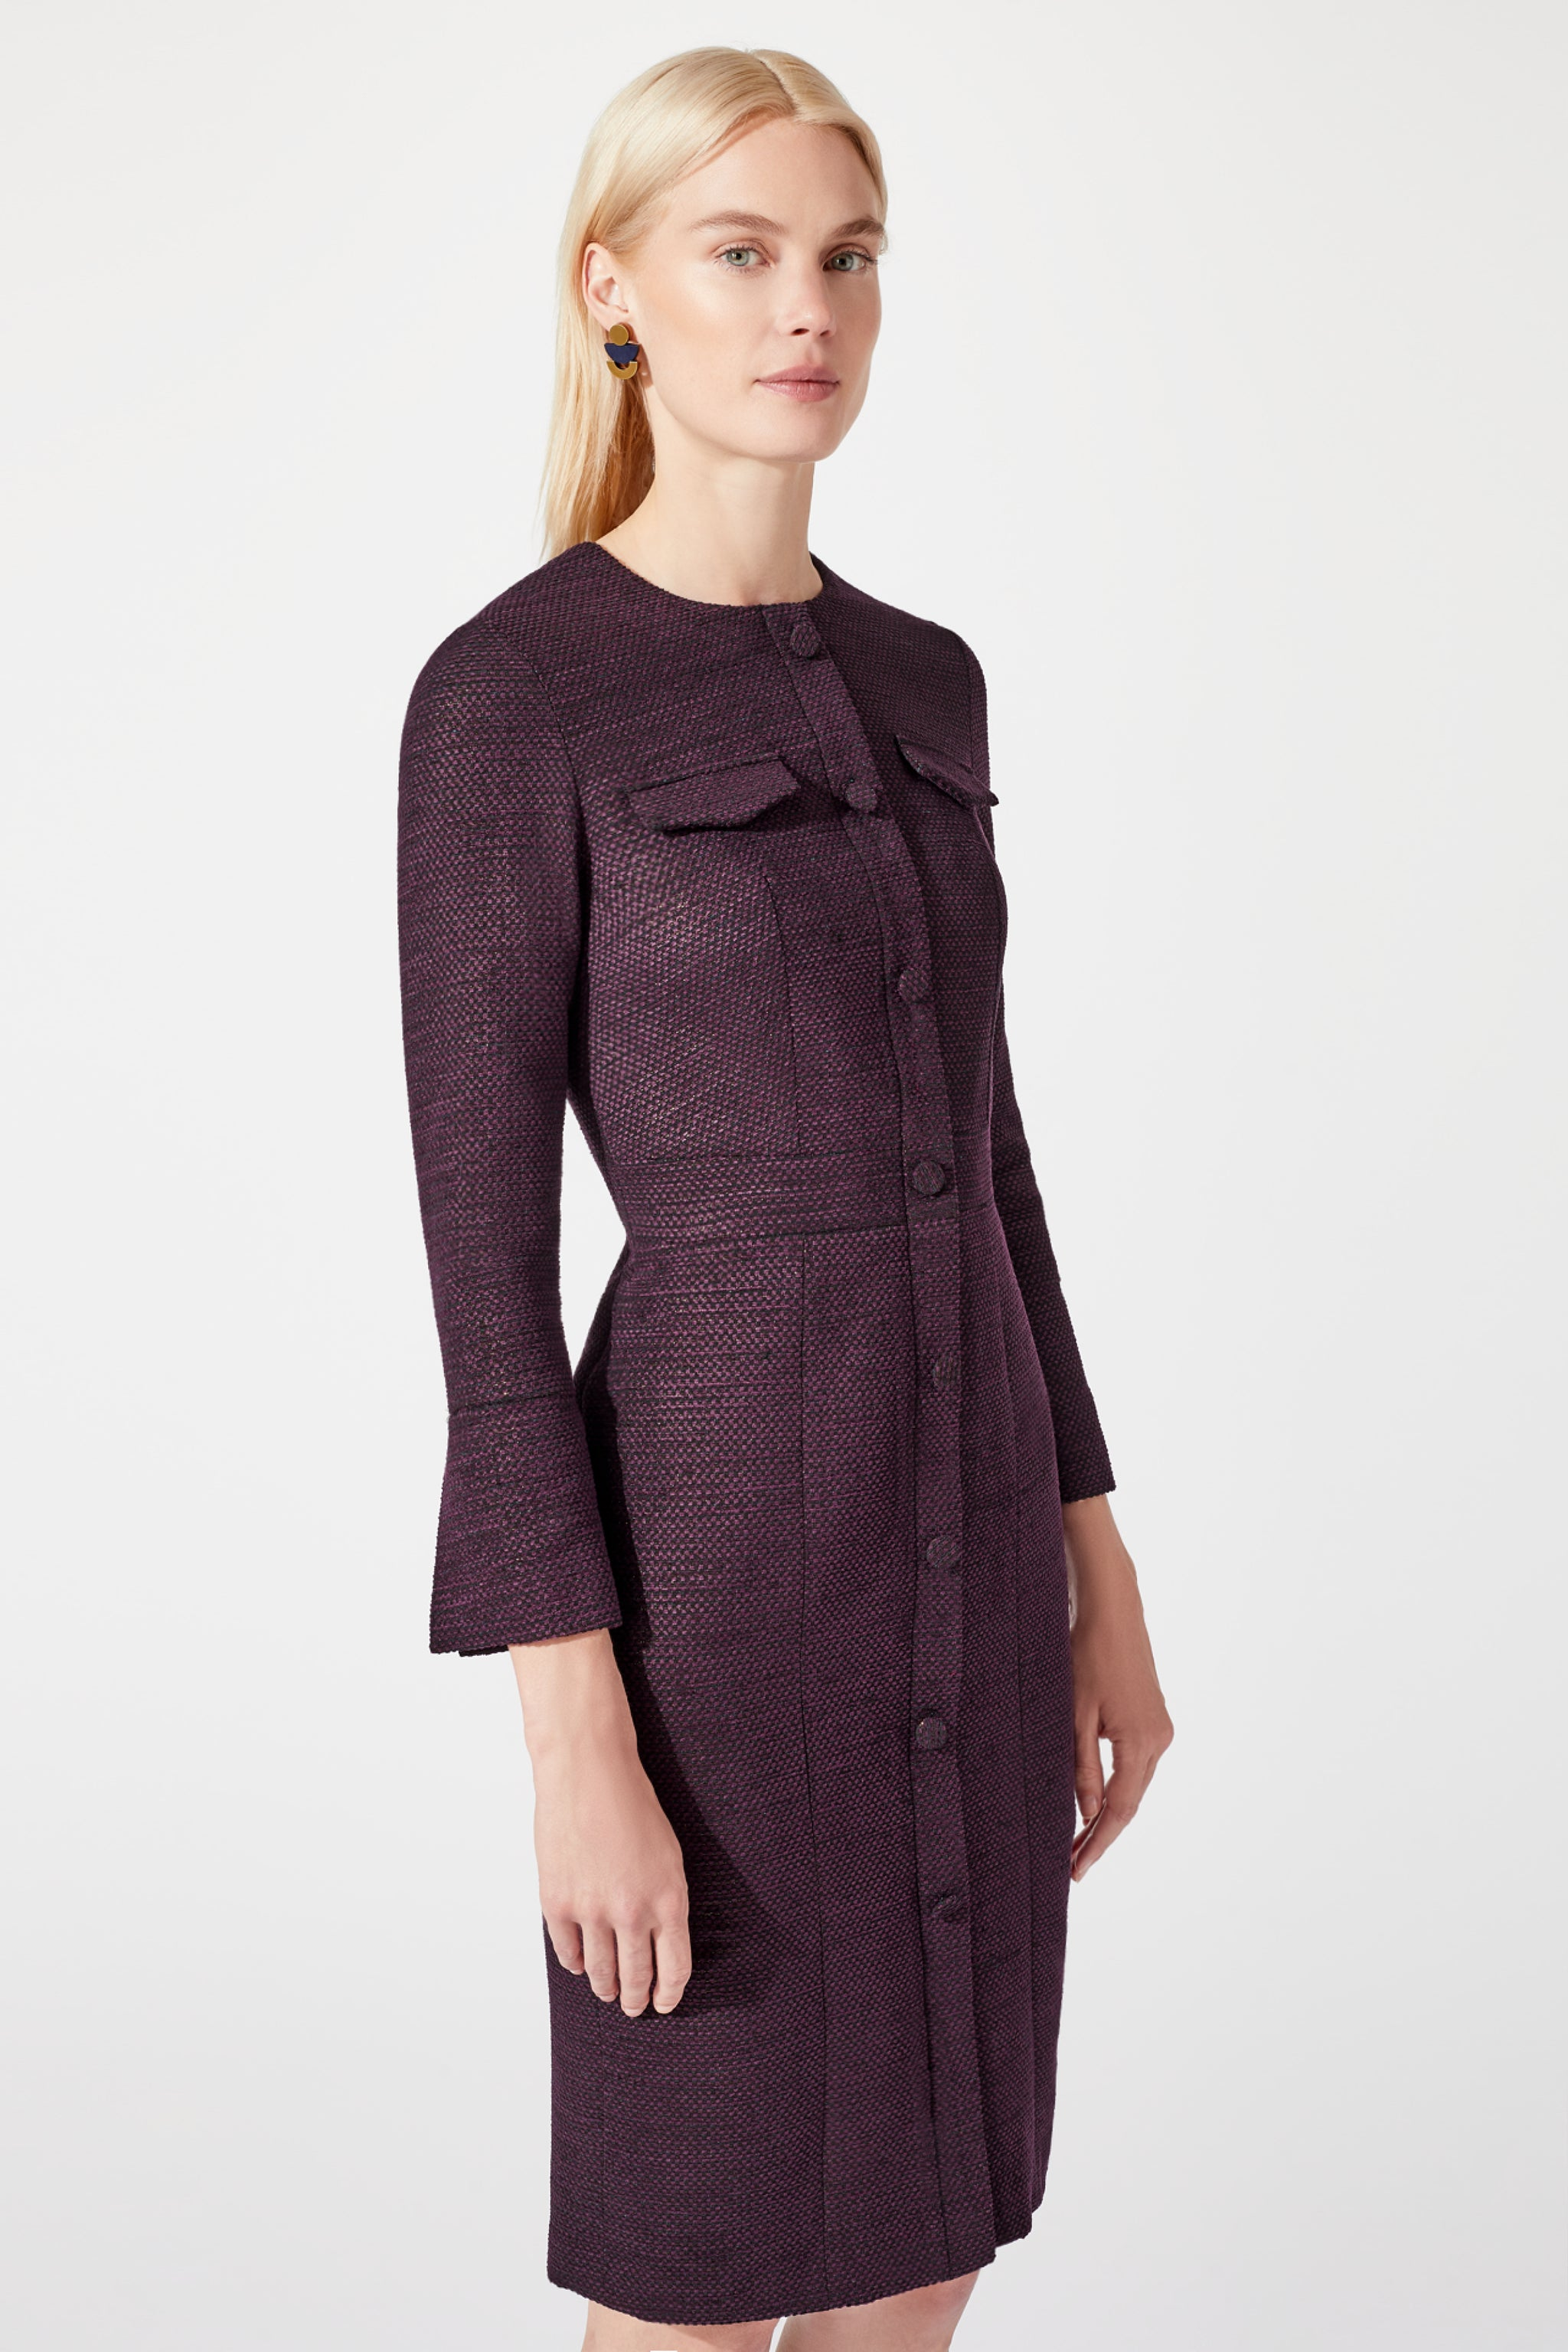 Maddox Damson Jacquard Dress